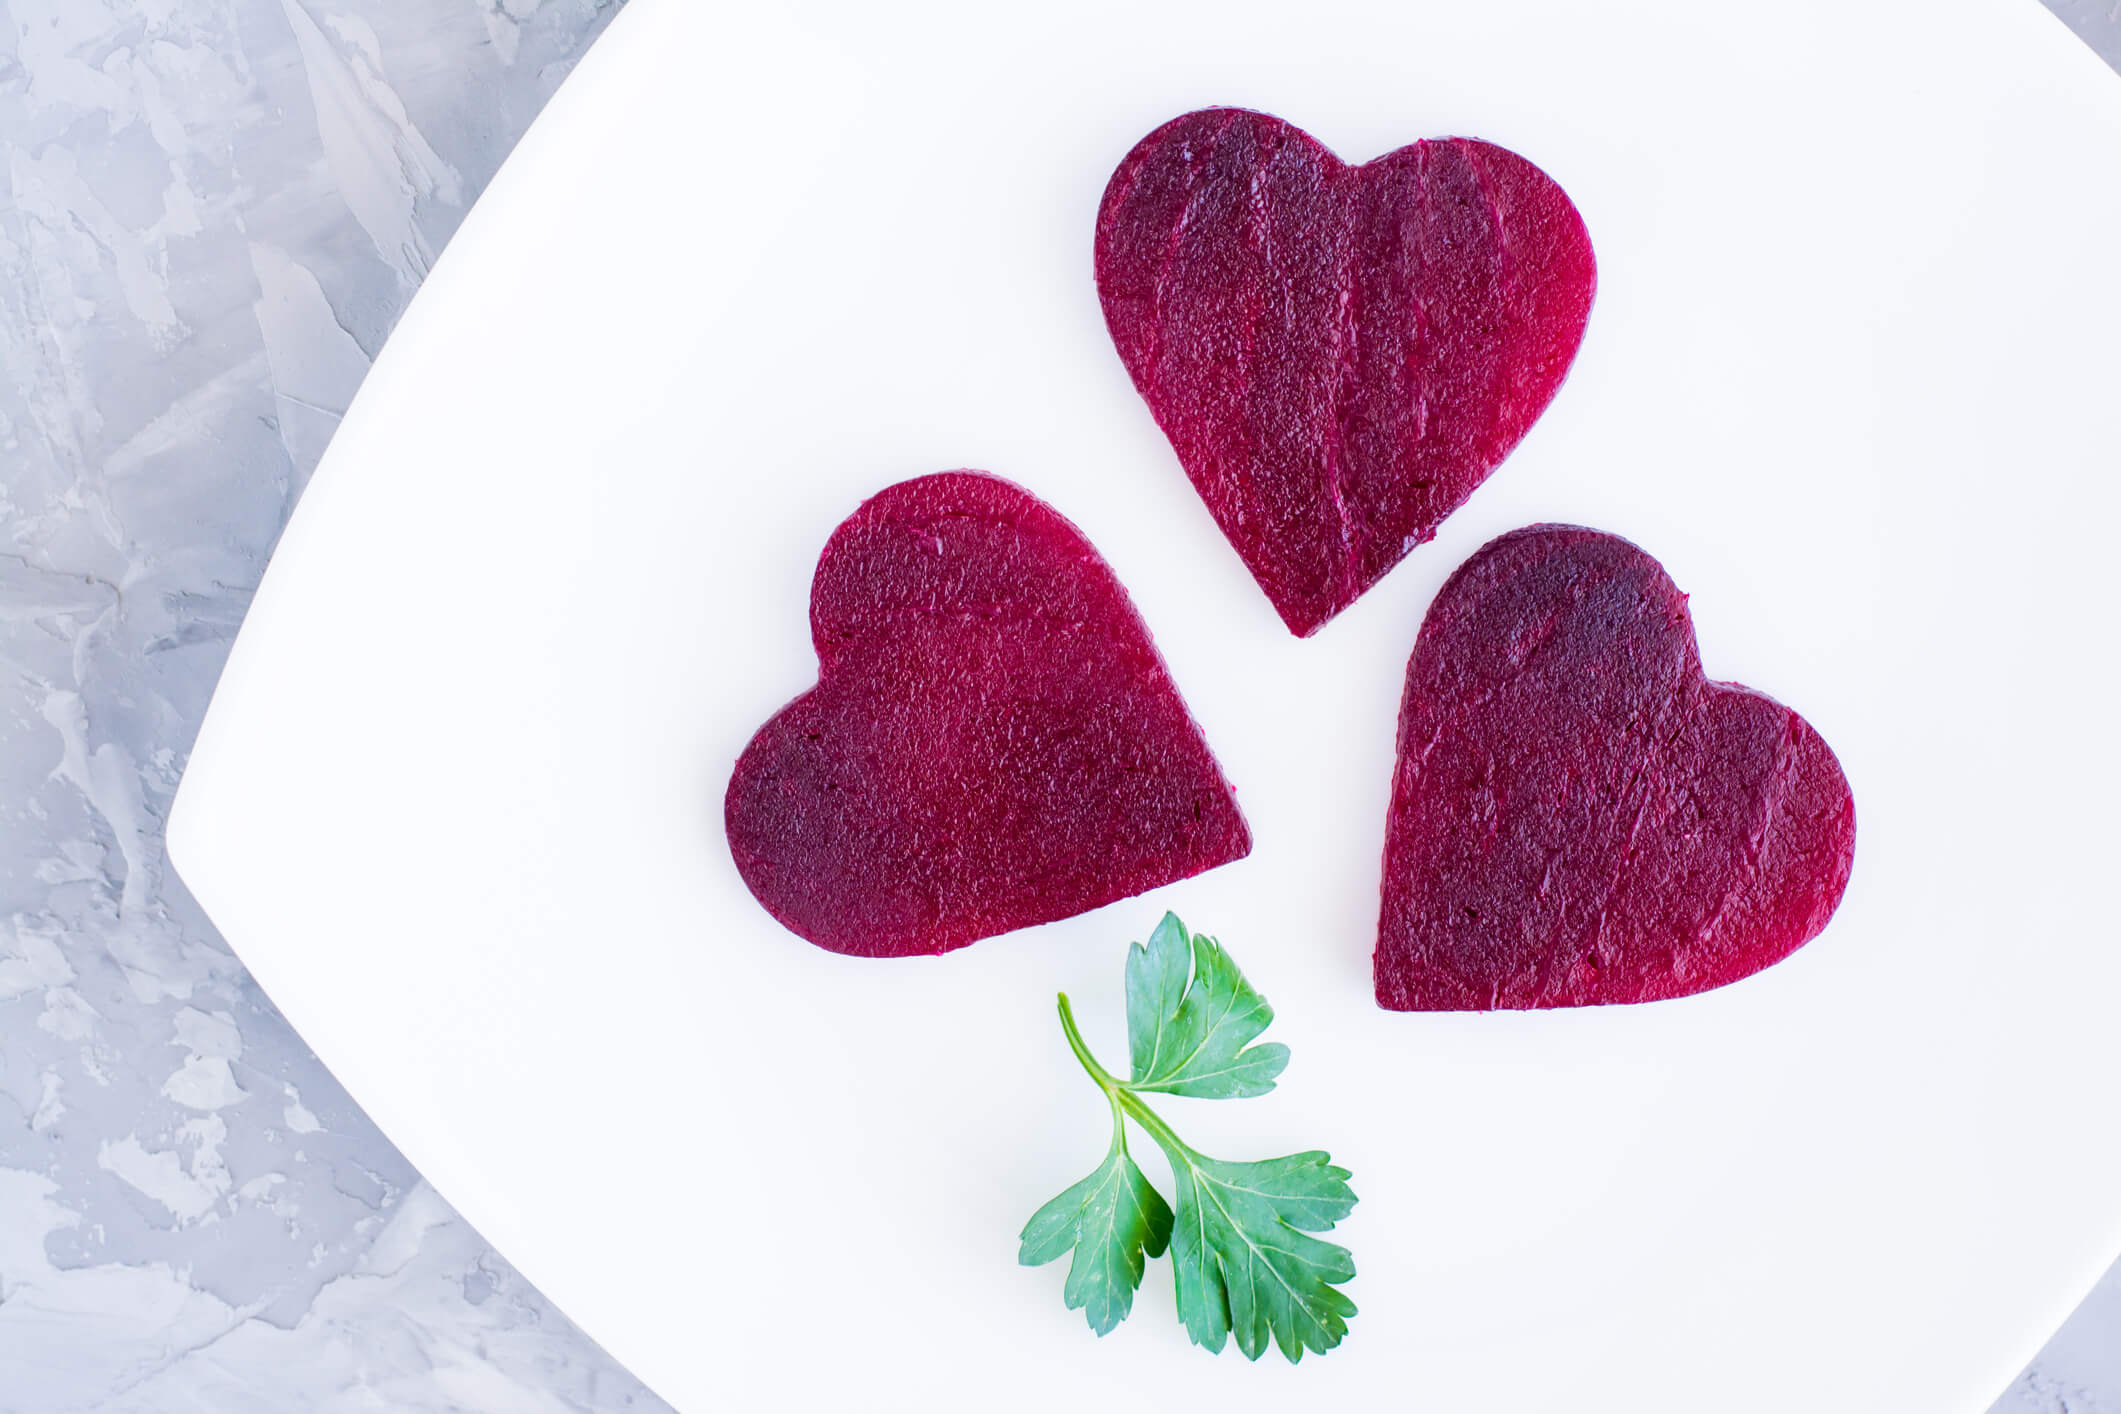 10 health benefits of beets